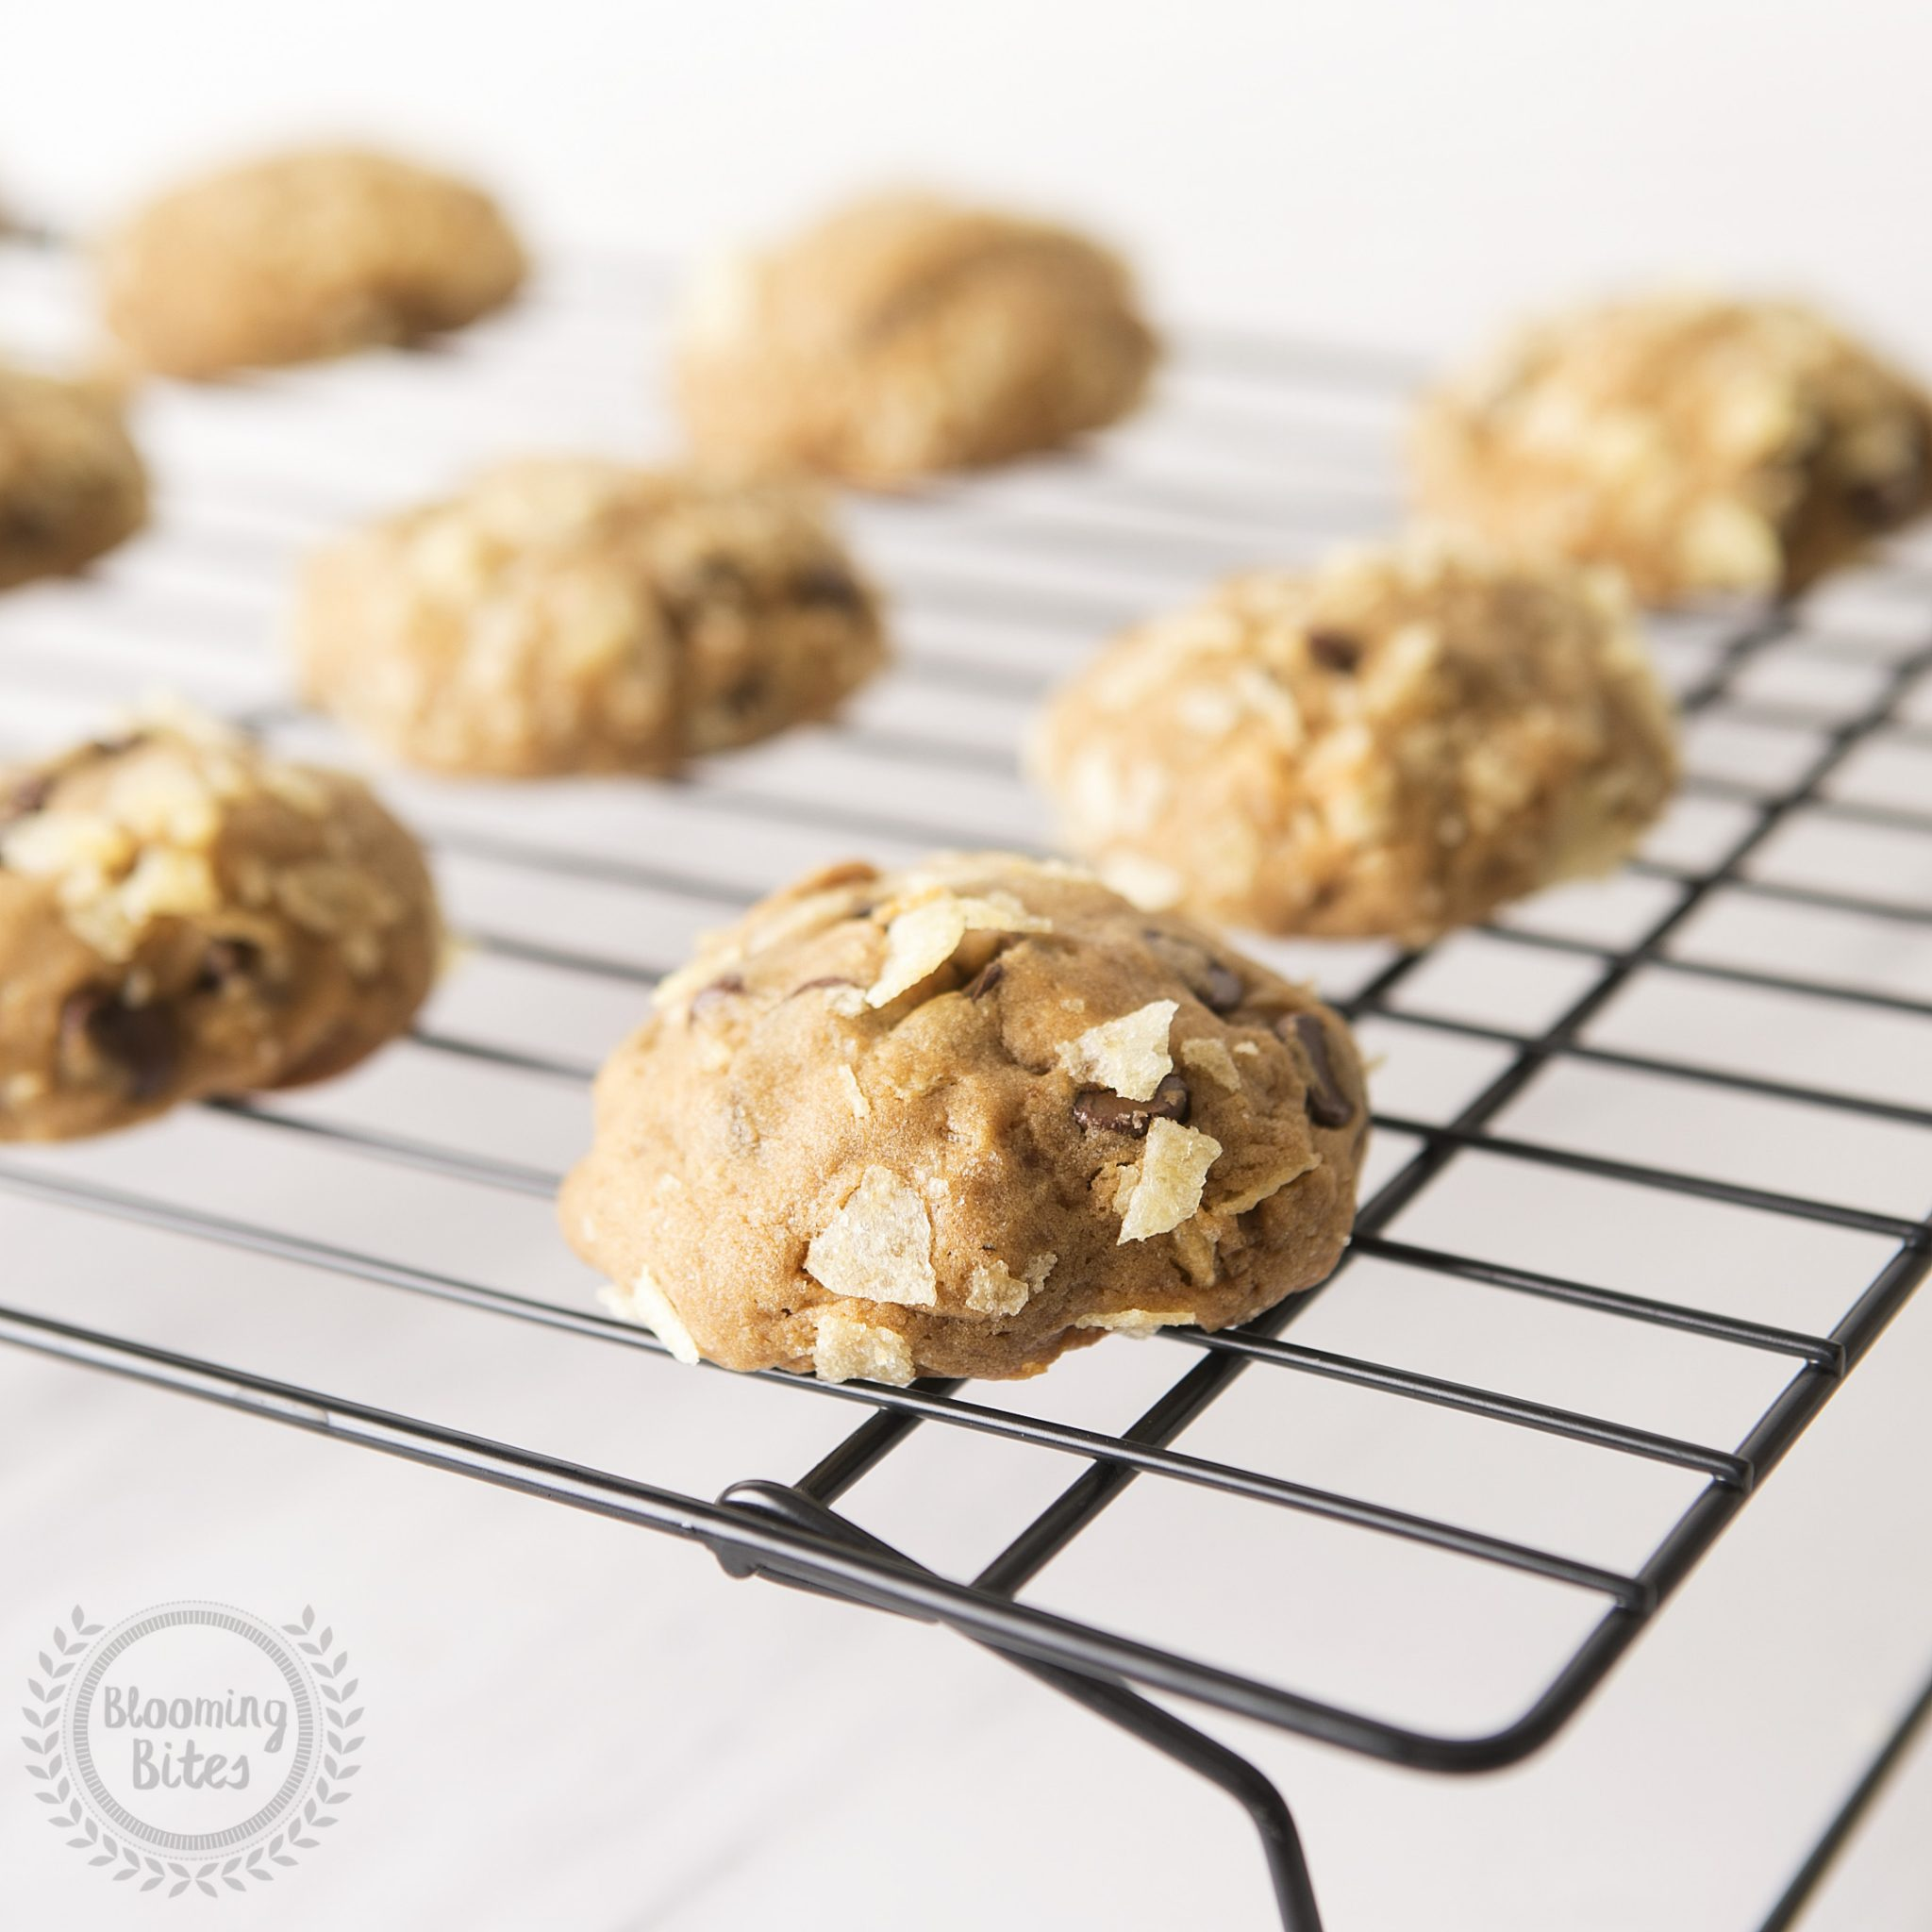 Chocolate and Potato Chip Cookies - Blooming Bites Photography